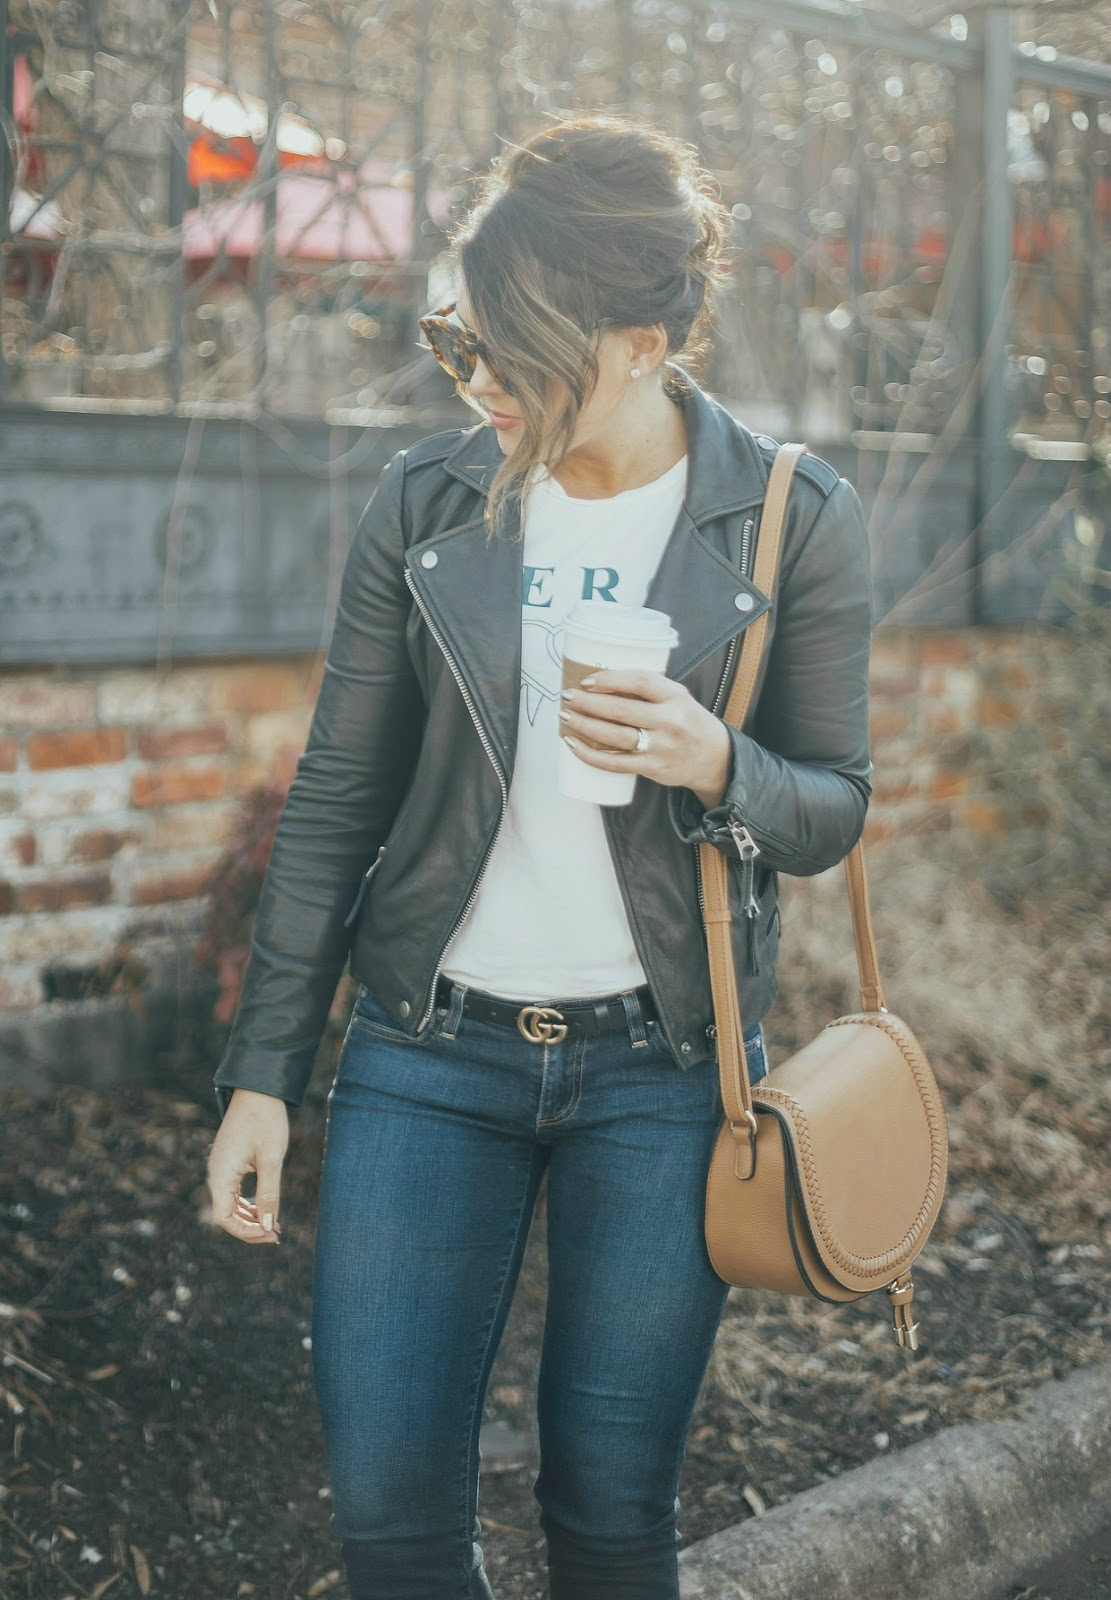 moto leather jacket, gucci marmont belt, life and messy hair, xo samantha brooke, sam brooke photo, samantha brooke photography, nc photographer, greensboro photographer, nc blogger, casual winter style